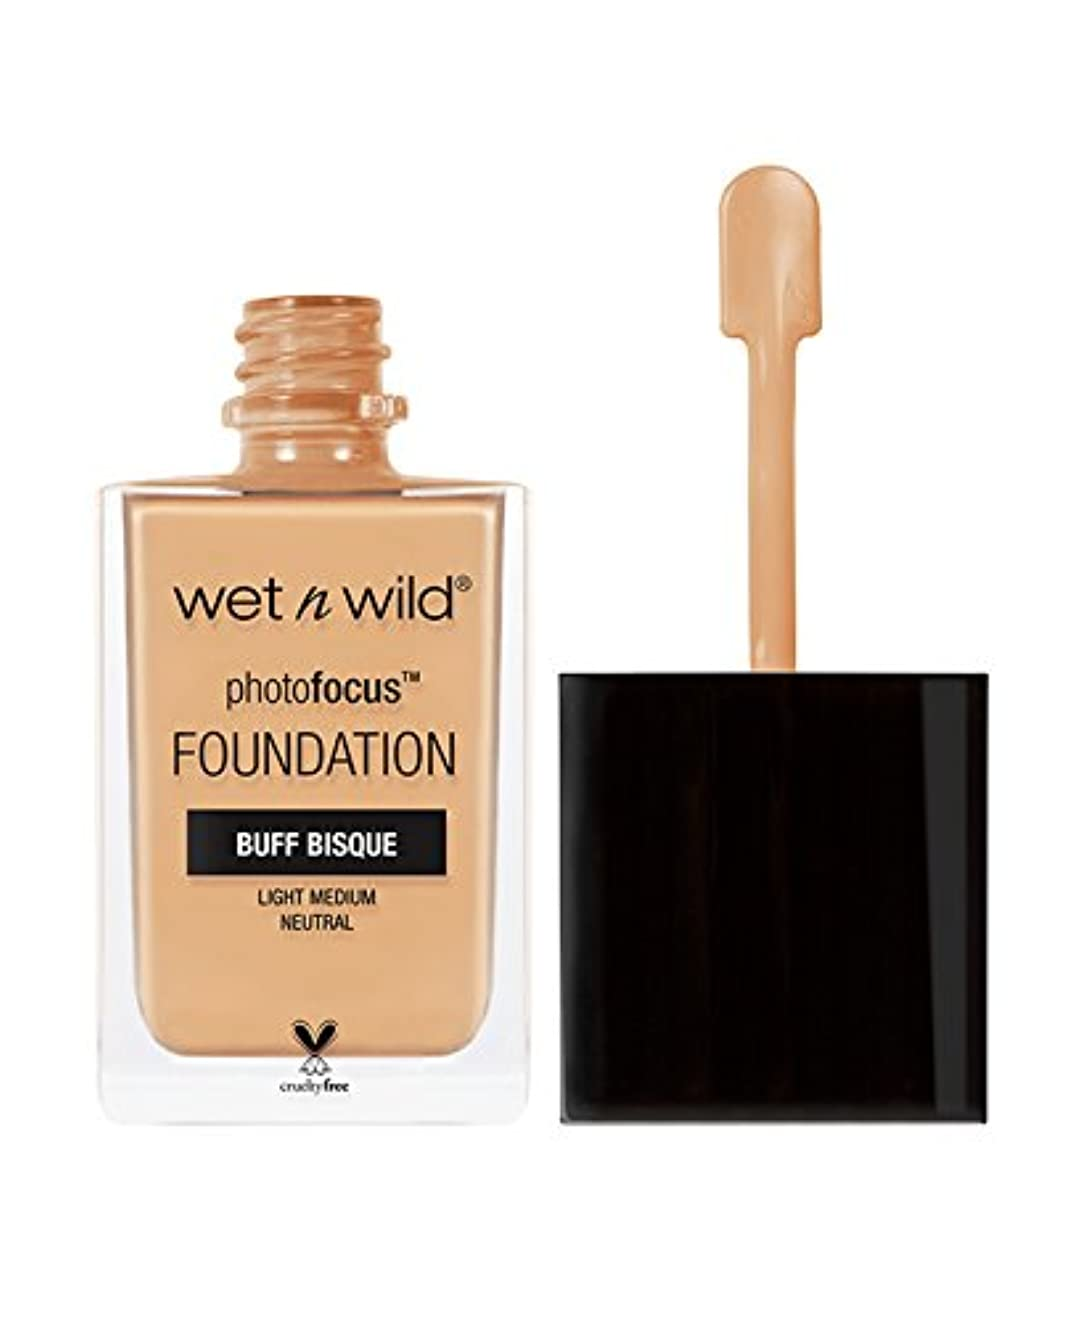 道路まさに慣性WET N WILD Photo Focus Foundation - Buff Bisque (並行輸入品)